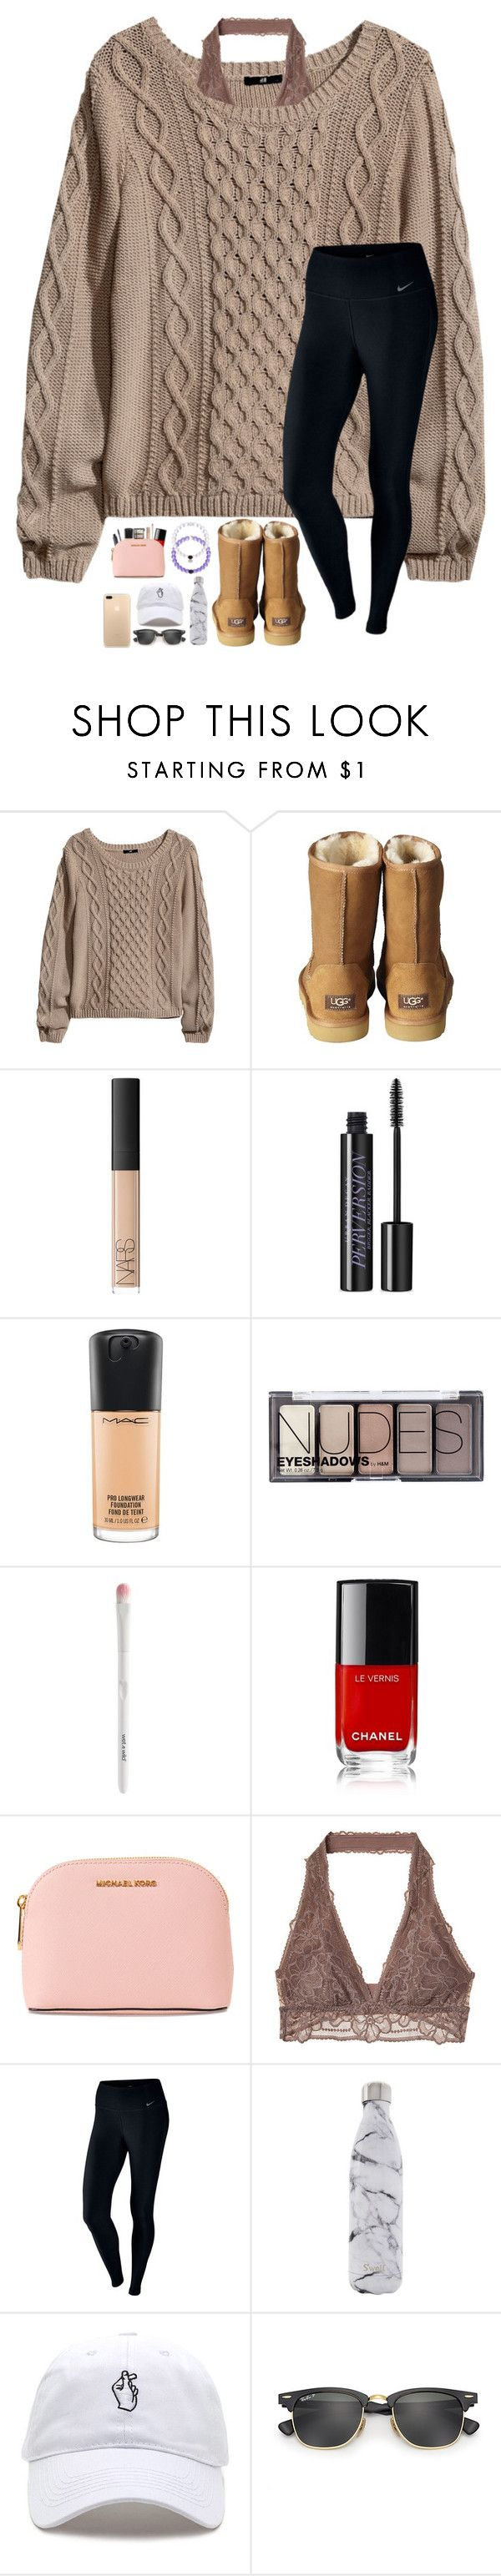 """Illuminate is perfection"" by lovemyariana ❤ liked on Polyvore featuring H&M, UGG Australia, NARS Cosmetics, Urban Decay, MAC Cosmetics, MICHAEL Michael Kors, NIKE, S'well and Ray-Ban"